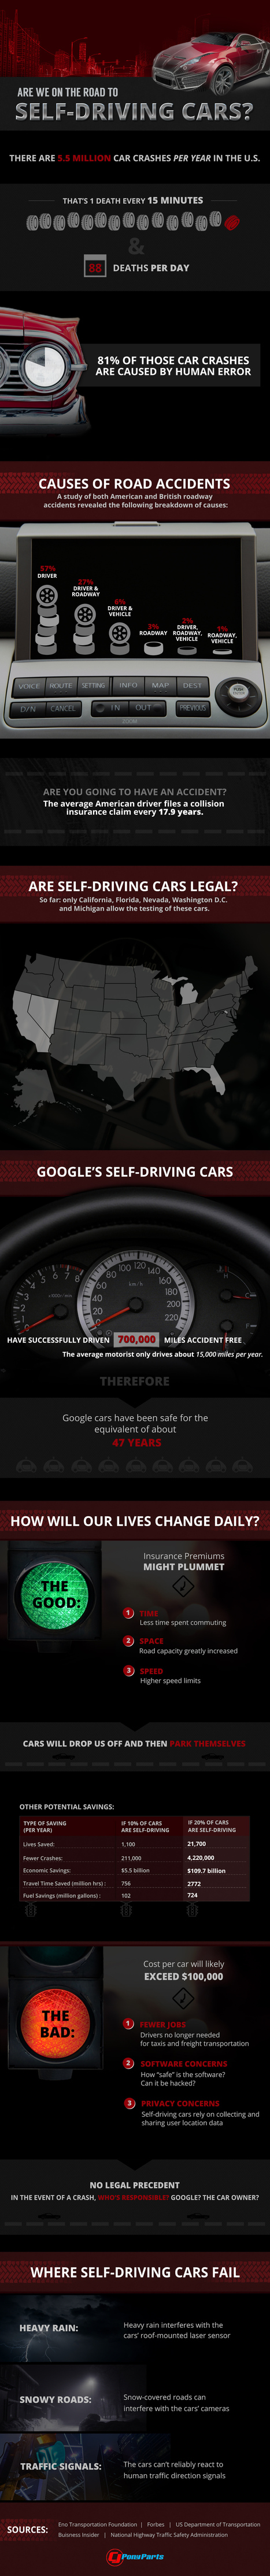 Algunas reflexiones sobre los coches sin conductor #infografia #infographic #tech | Seo, Social Media Marketing | Scoop.it